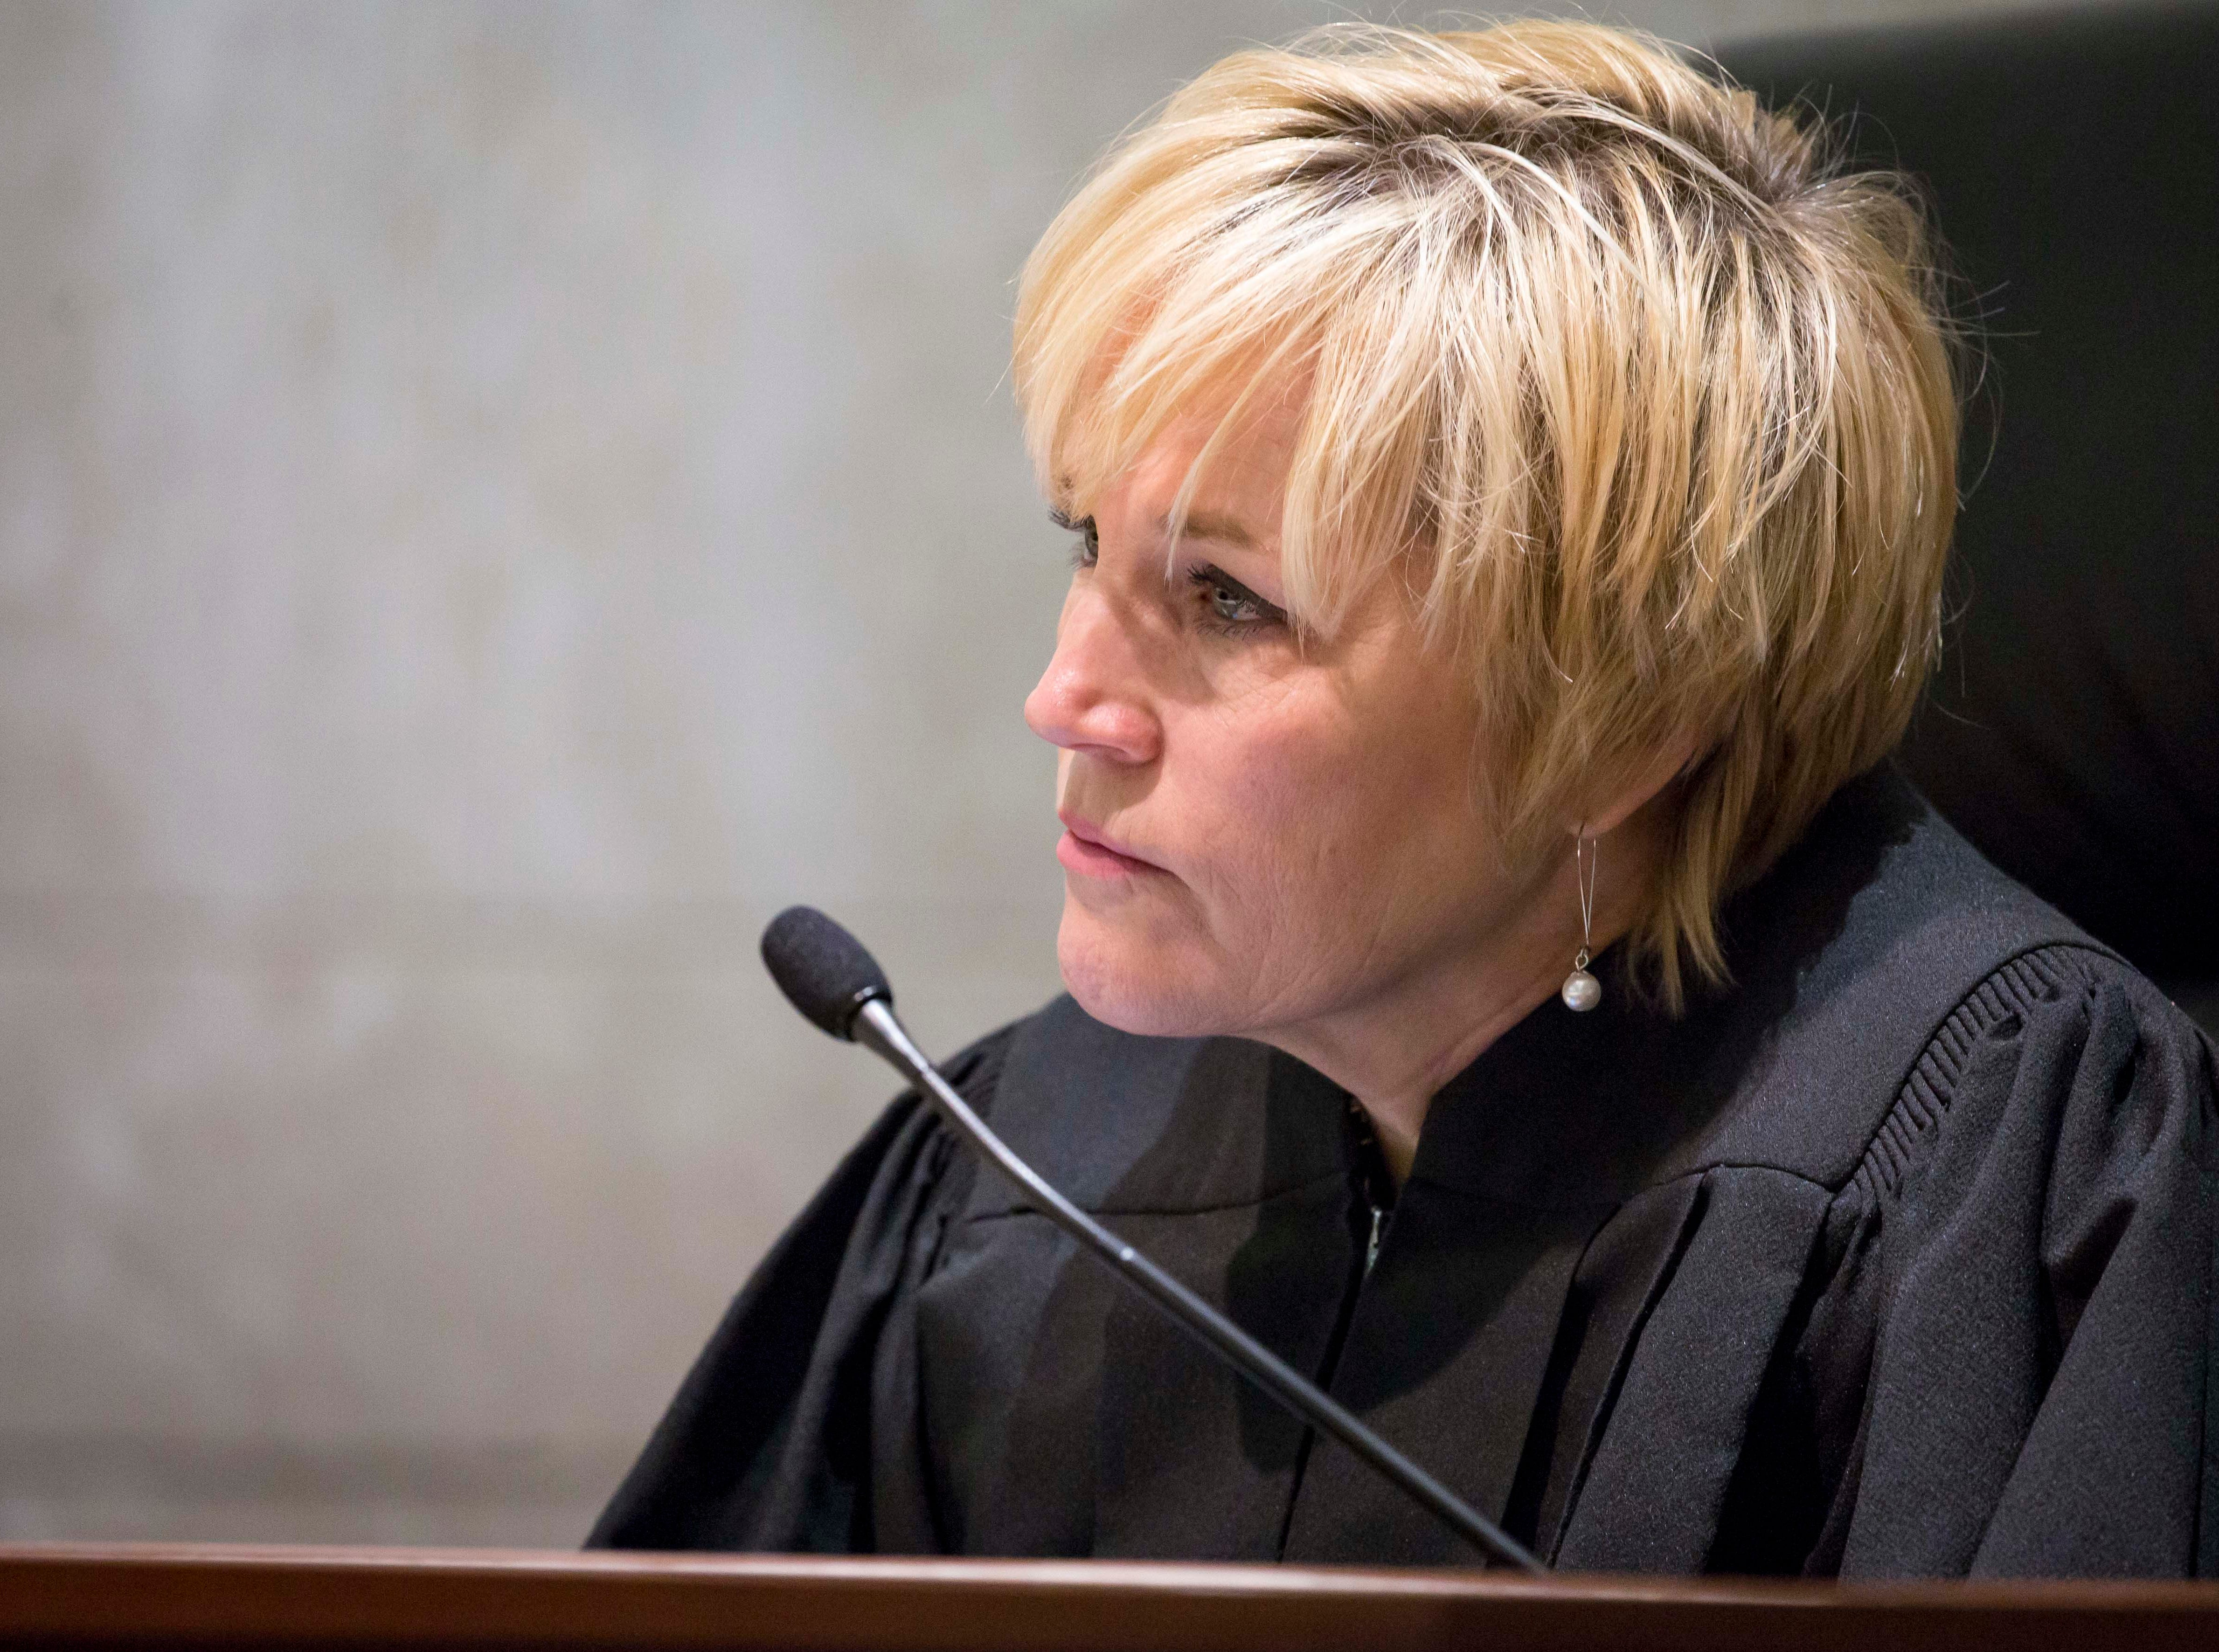 Justice Susan Christensen talks to attorneys at the Iowa Supreme Court as they hear arguments in two challenges to Iowa's collective bargaining law change last year. The challenges are from AFSCME and the Iowa State Education Association at the Judicial Building Wednesday, Dec. 12, 2018, in Des Moines, Iowa.